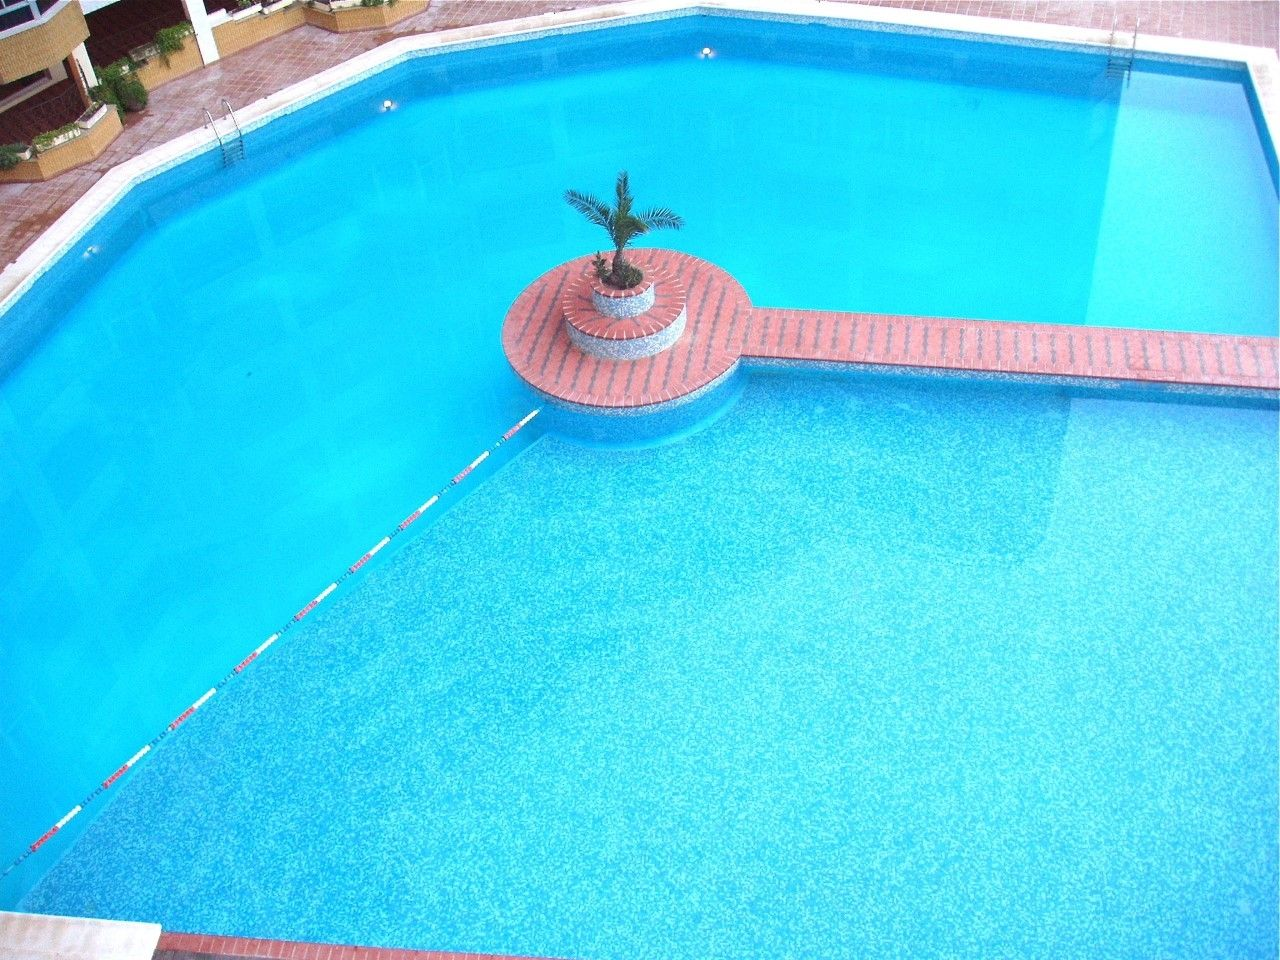 Rent Apartment in Avenida raco, 2. Apartamento en el racó